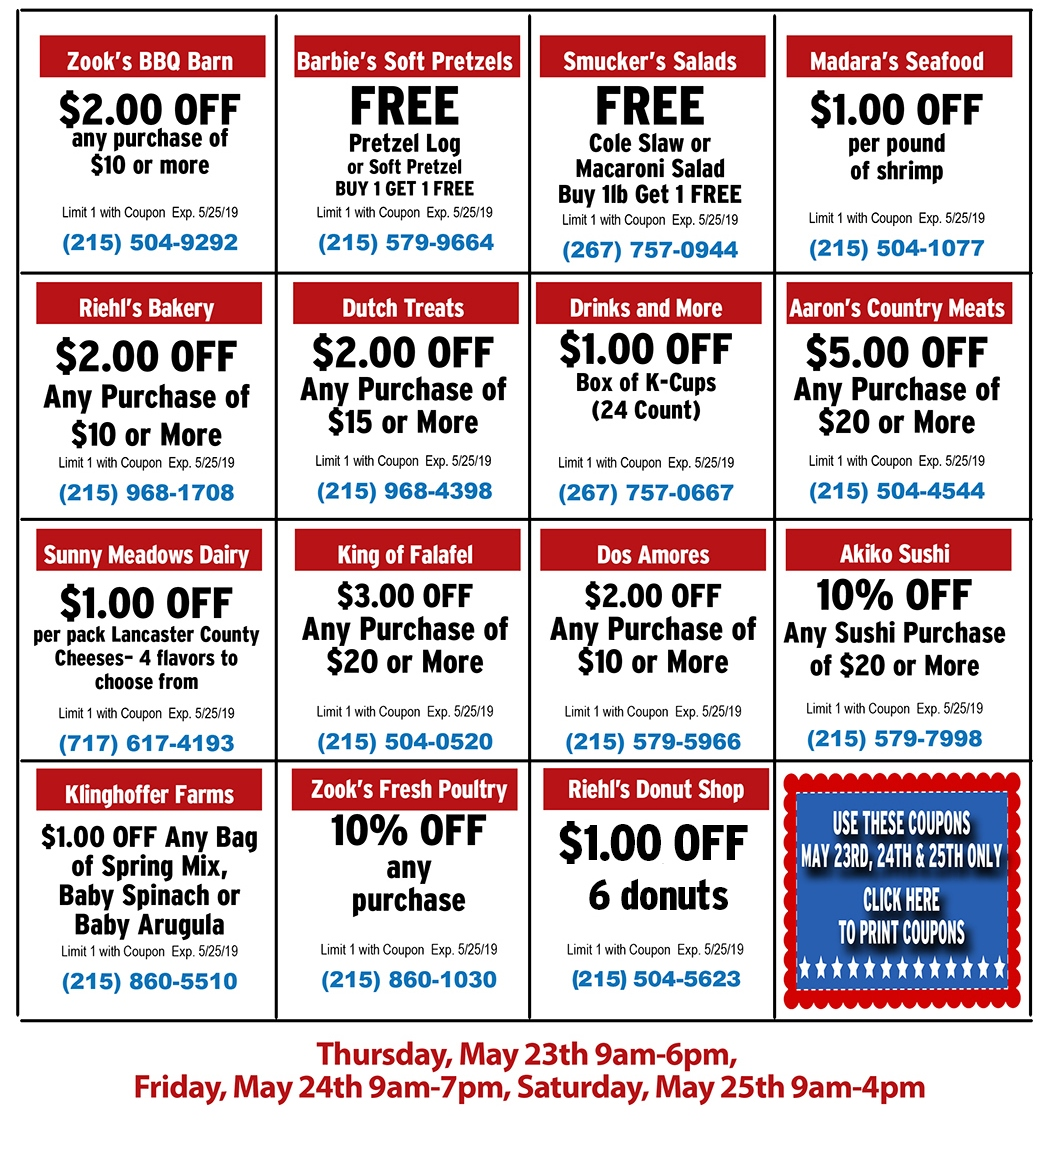 NFARM Mkt_Memorial Day_2019_coupons only